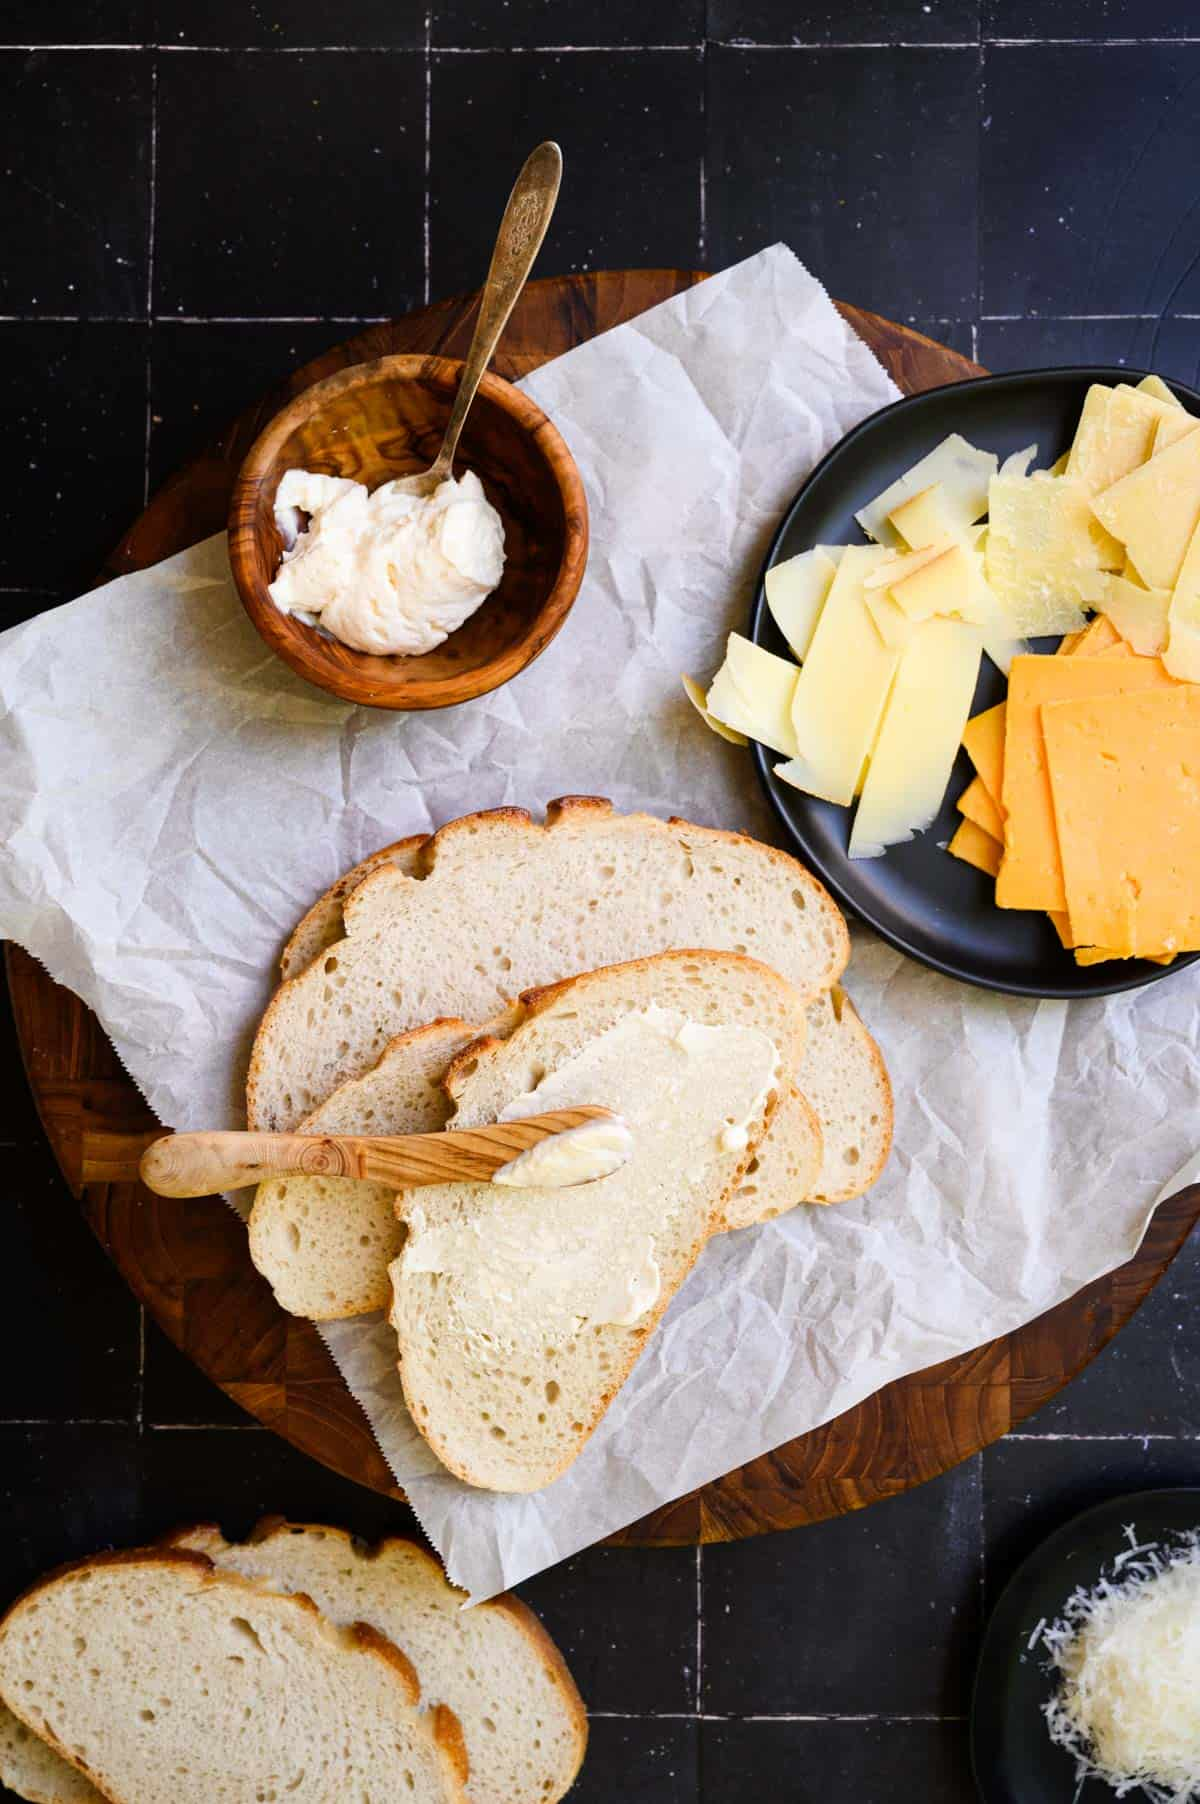 a black tiled background with mayo being spread on sliced bread and a plate of cheese slices.